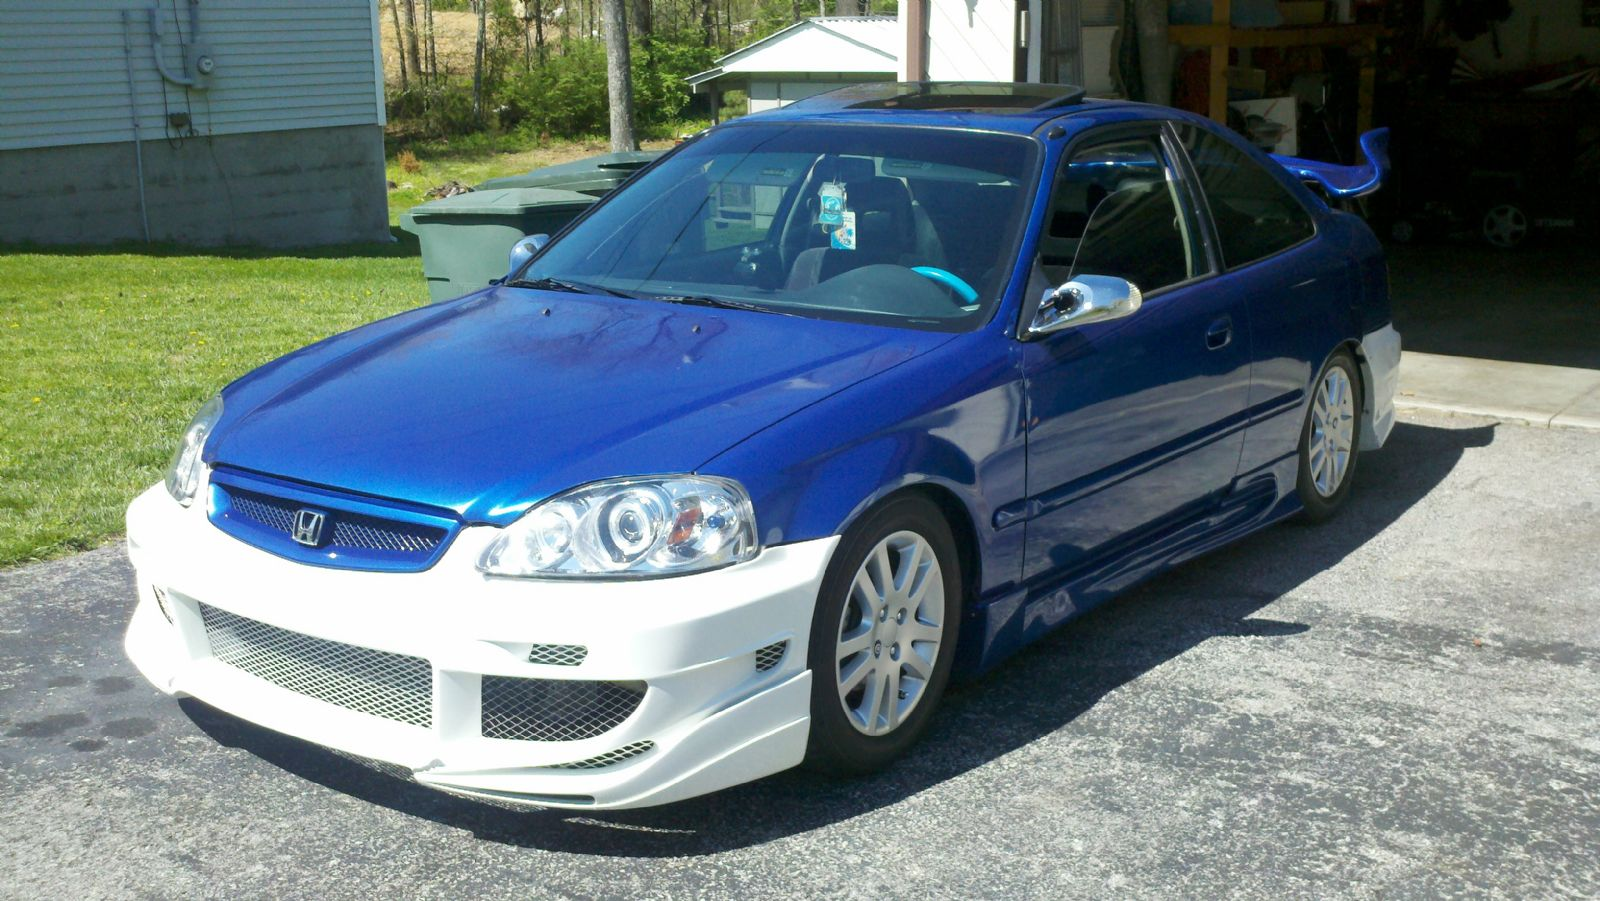 my honda found comments buddys wellthatsucks this in a like ago it week stolen custom detroit r turbo si he civic was